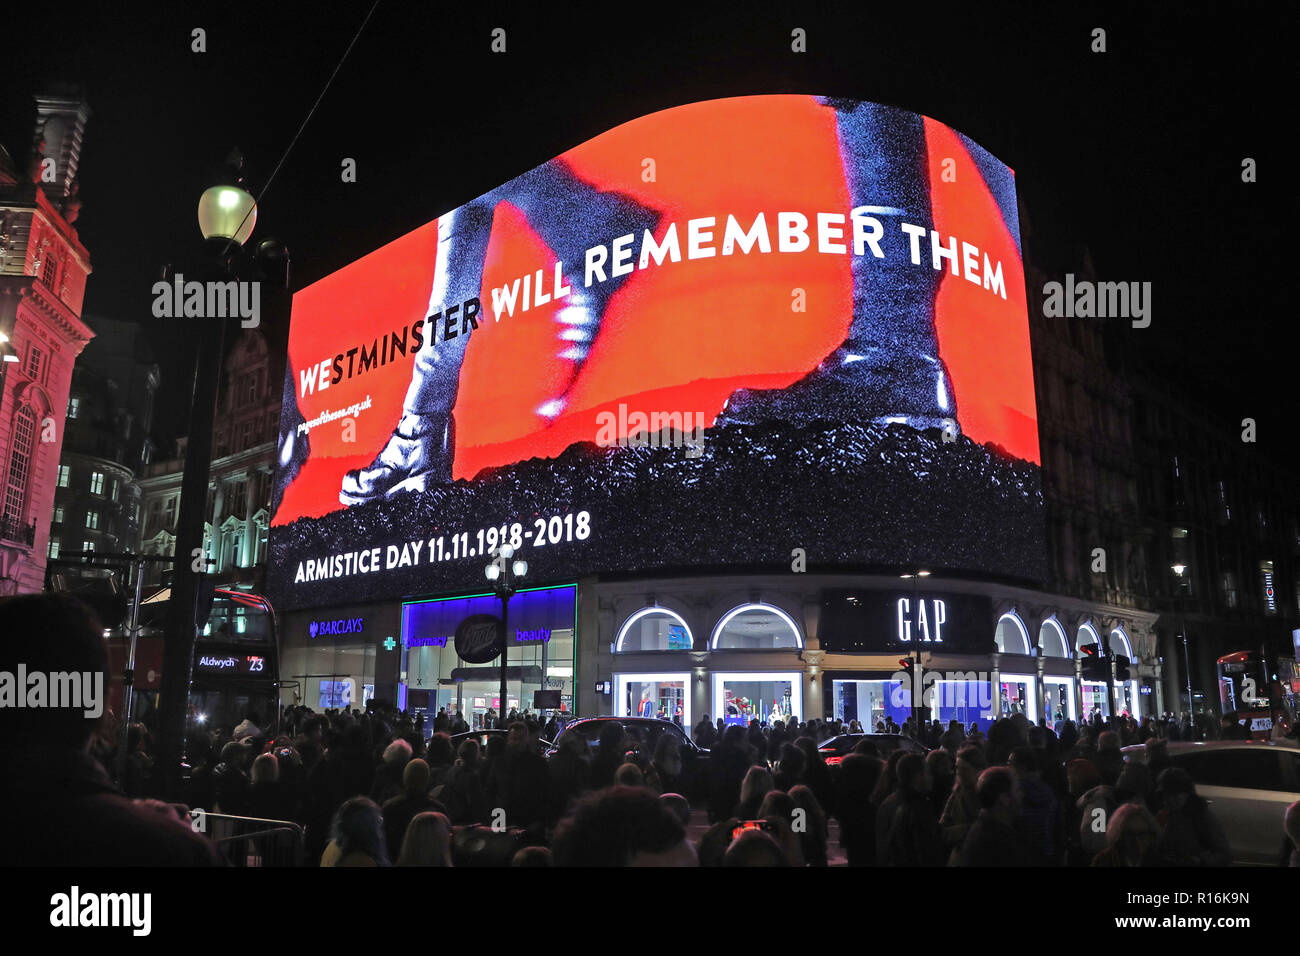 London, UK. 9th Nov, 2018. The screens of Piccadilly Circus swapped advertising for Armistice messages and marching feet ahead of a two minute silence observed at 7pm in remembrance of the 100th anniversary of the Armistice at Piccadilly Circus in London. Crowds gathered to watch as the sound of marching feet echoed through the surrounding streets. Credit: Paul Brown/Alamy Live News Stock Photo